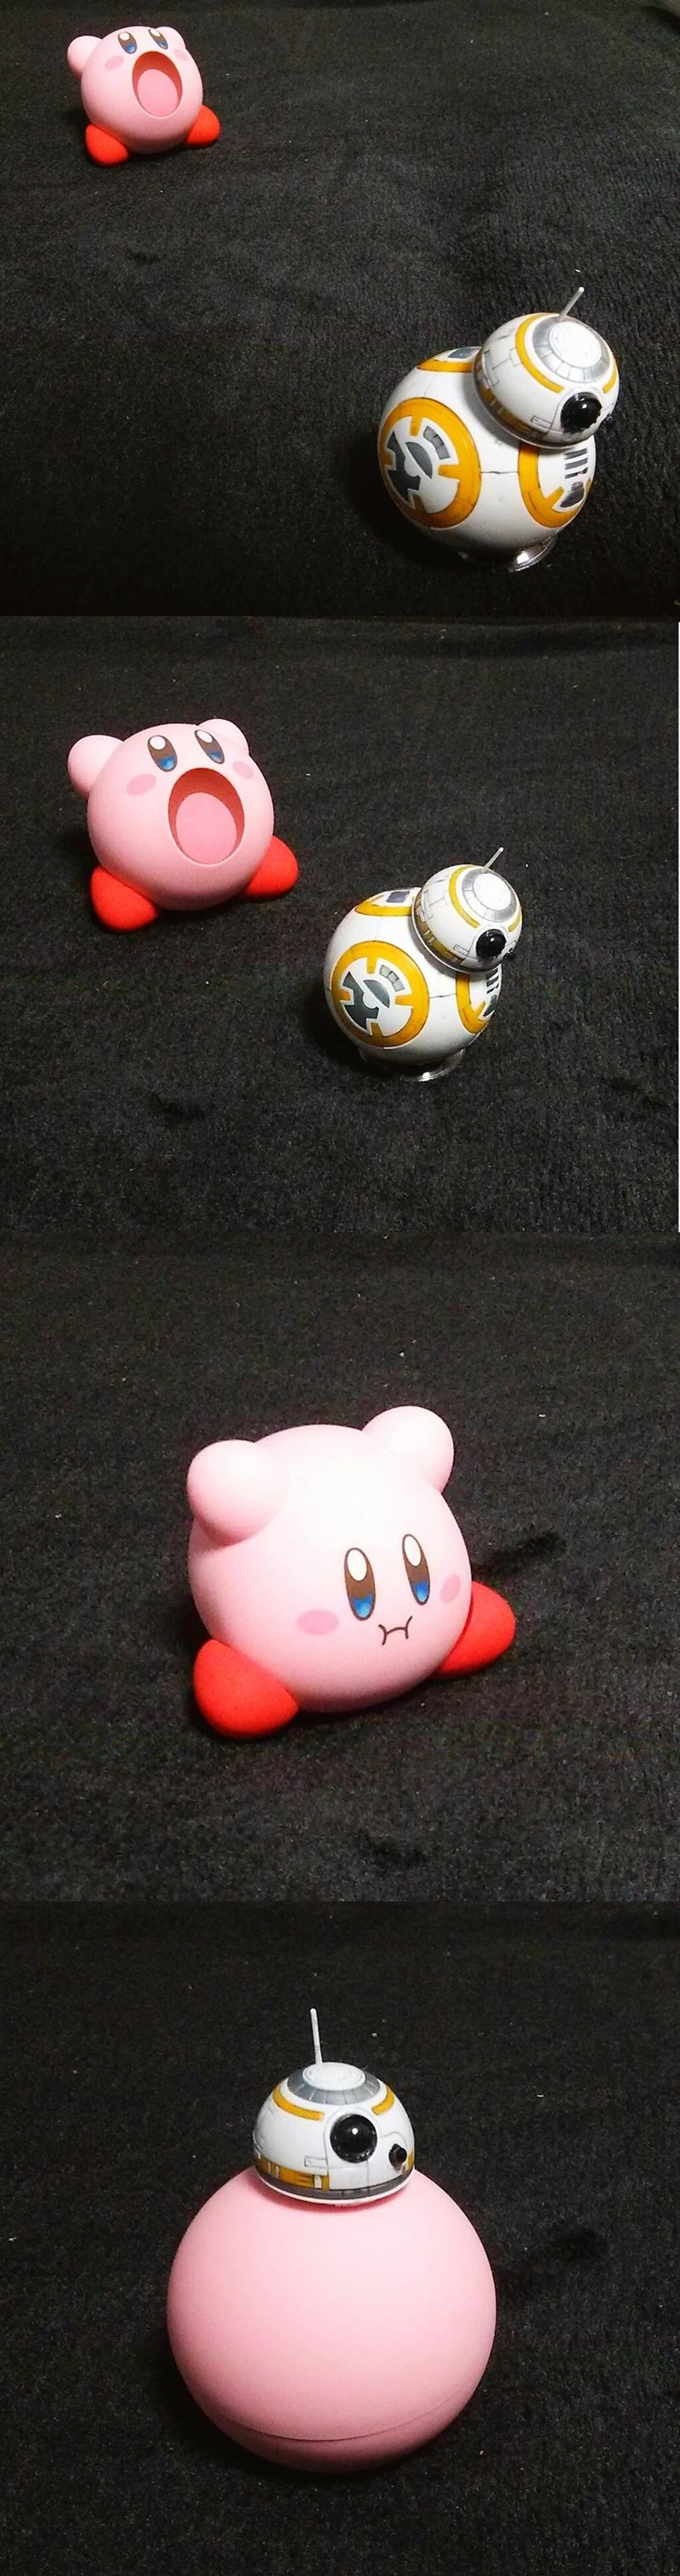 kirby,bb 8,star wars vii